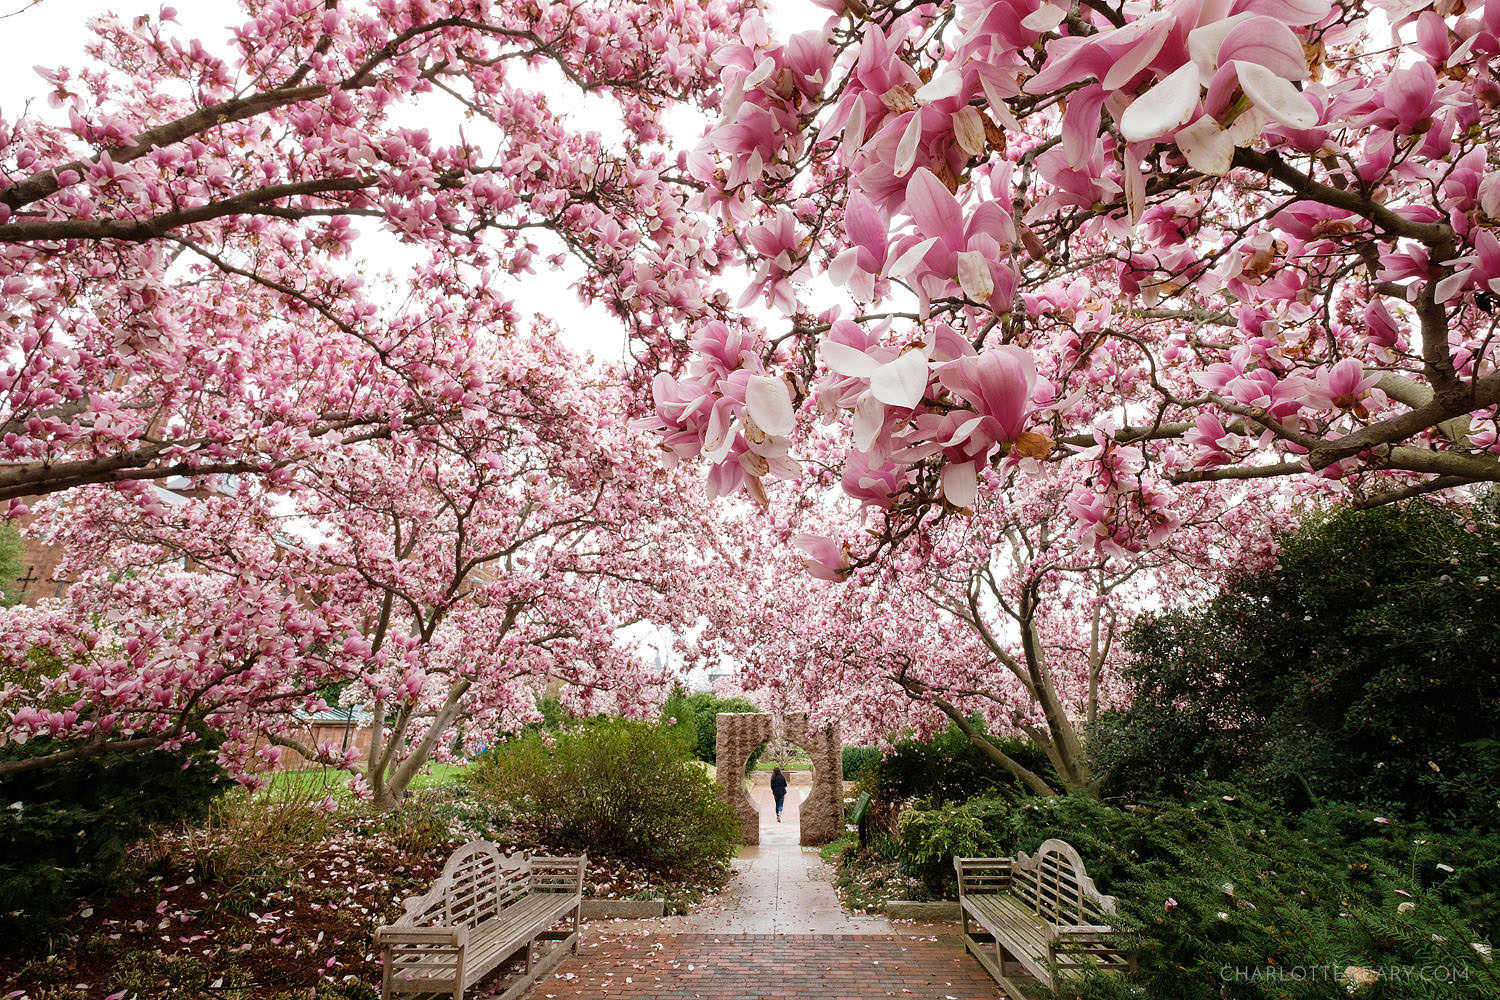 The magnolias of the Enid Haupt Garden at the Smithsonian Castle